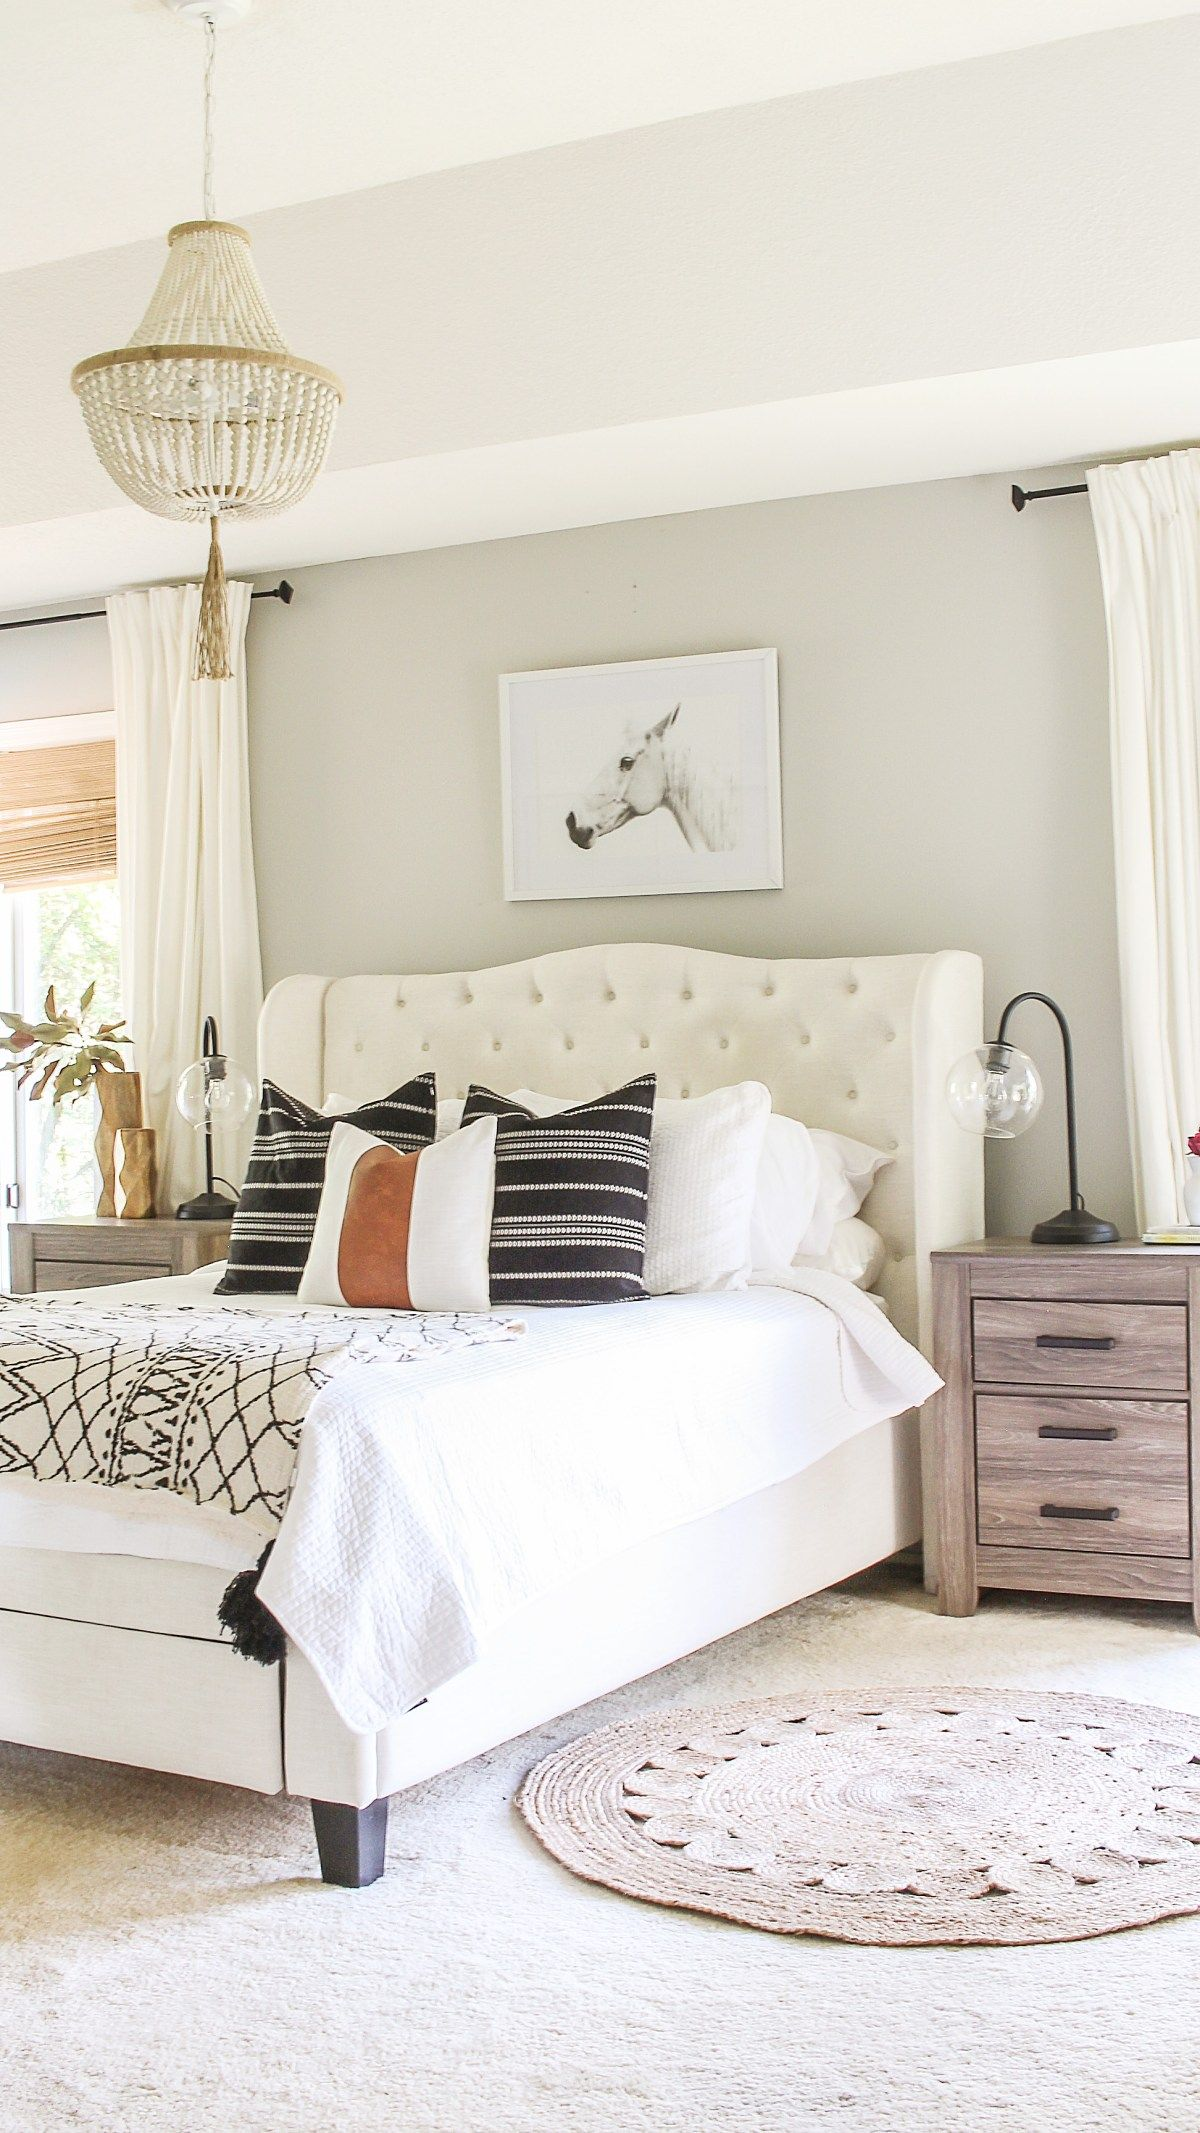 Modern Farmhouse Bedroom Refresh on a Budget | Rustic ...